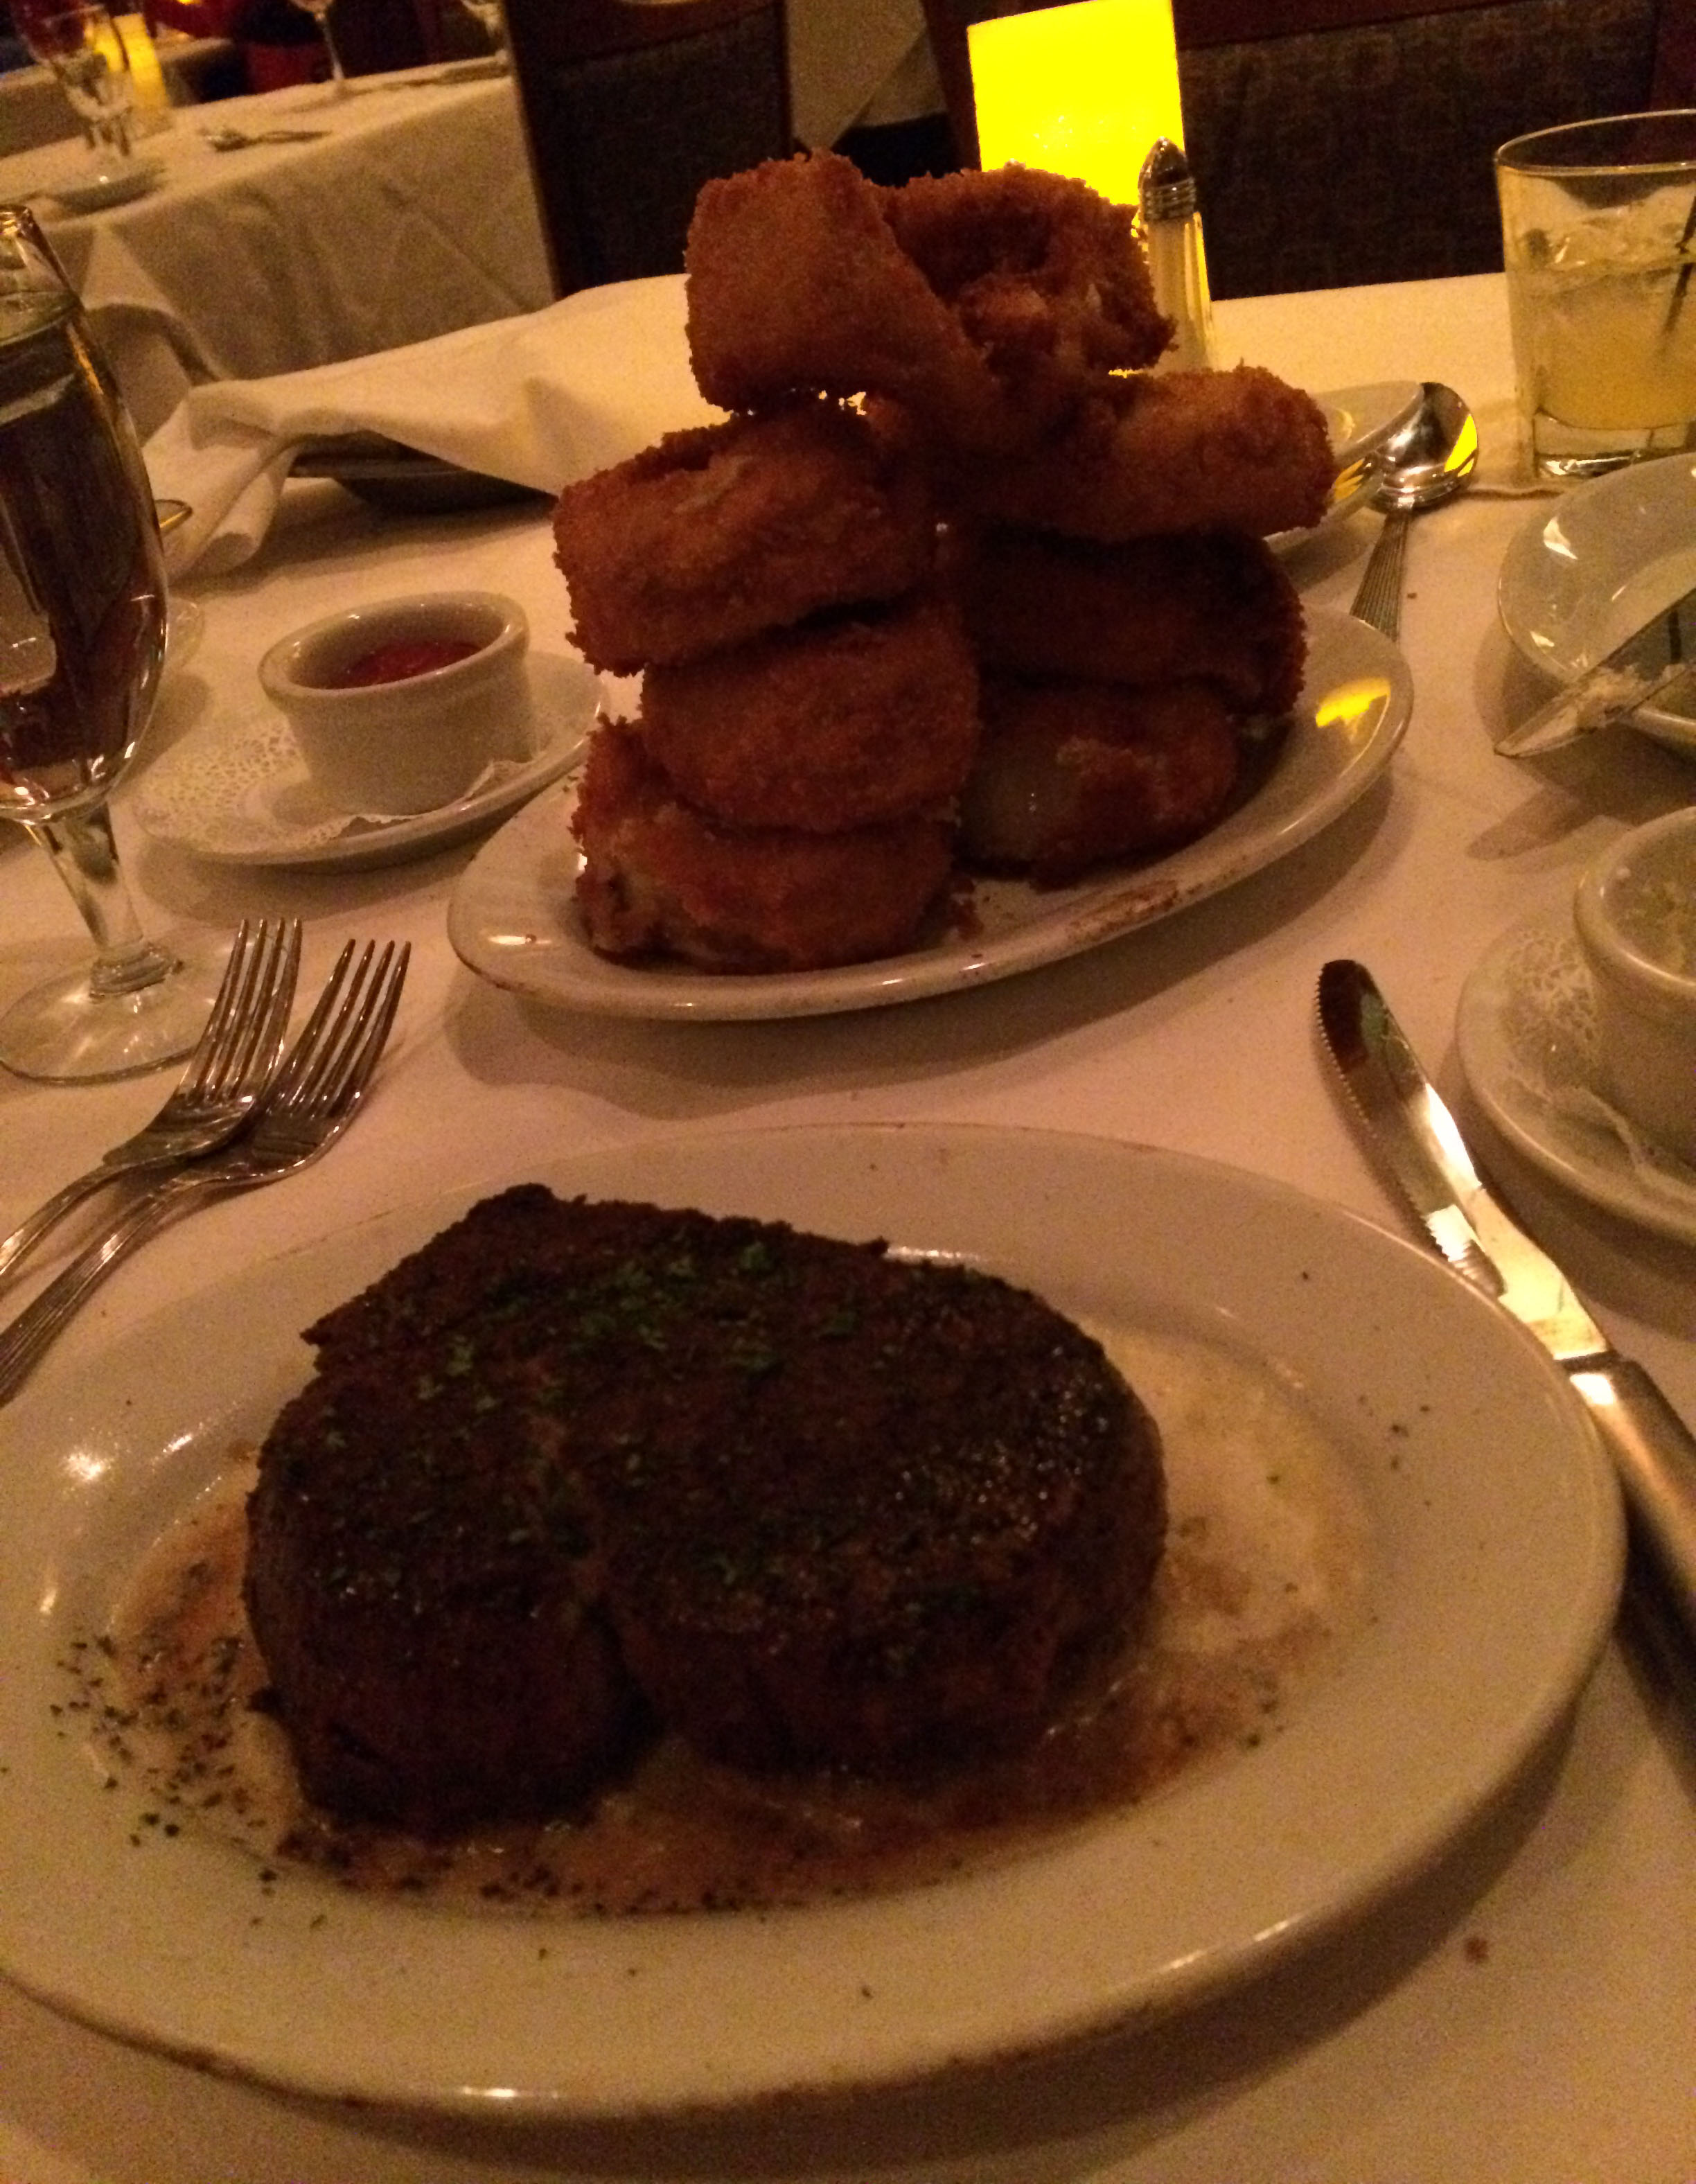 As you can see, the onion rings were just silly big. The steak is my filet.